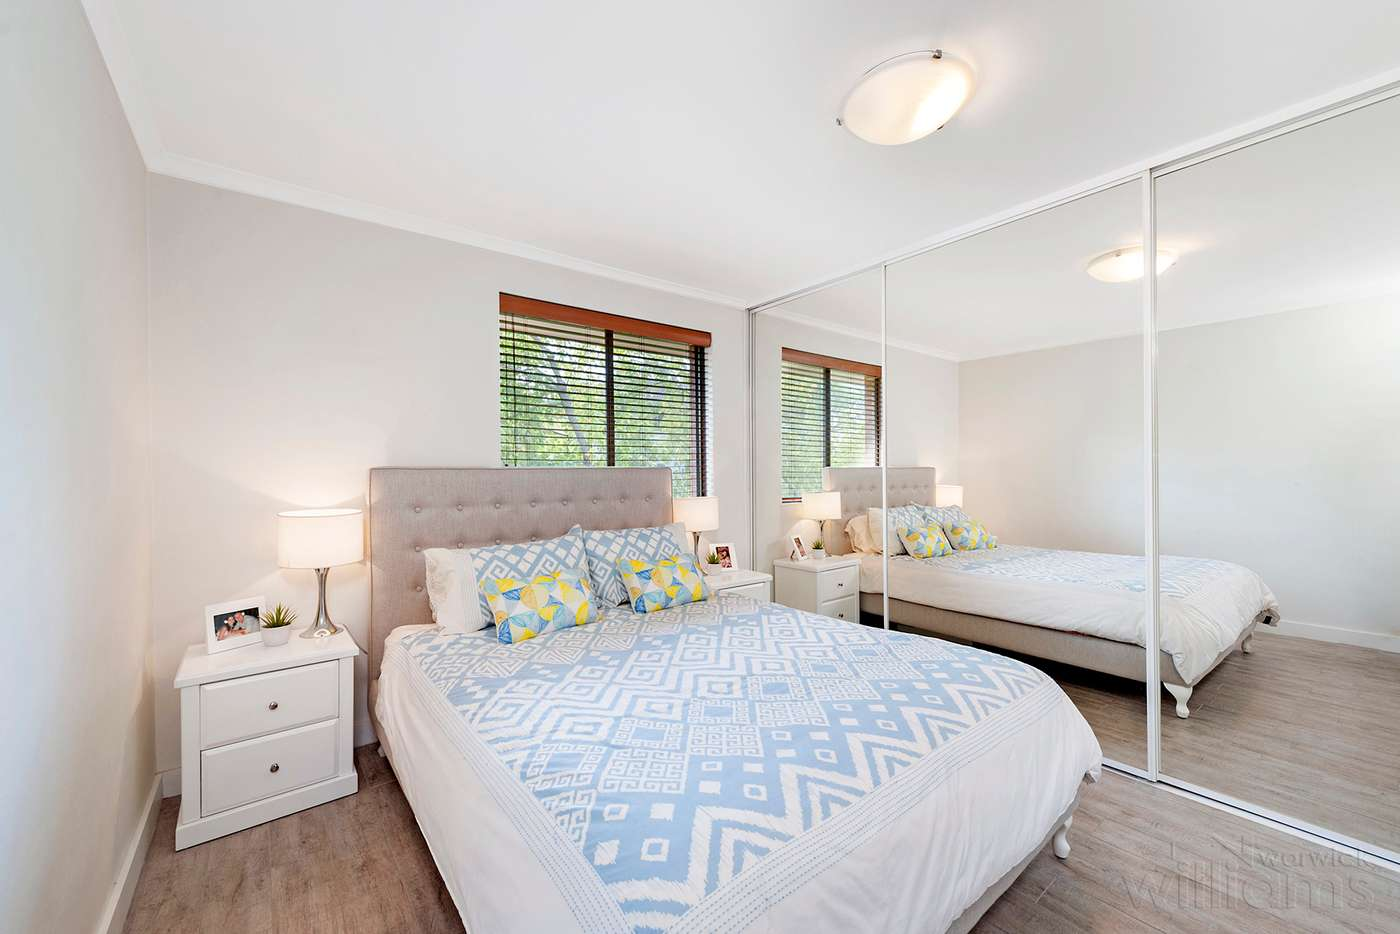 Fifth view of Homely apartment listing, 6/102 Hampden Road, Russell Lea NSW 2046